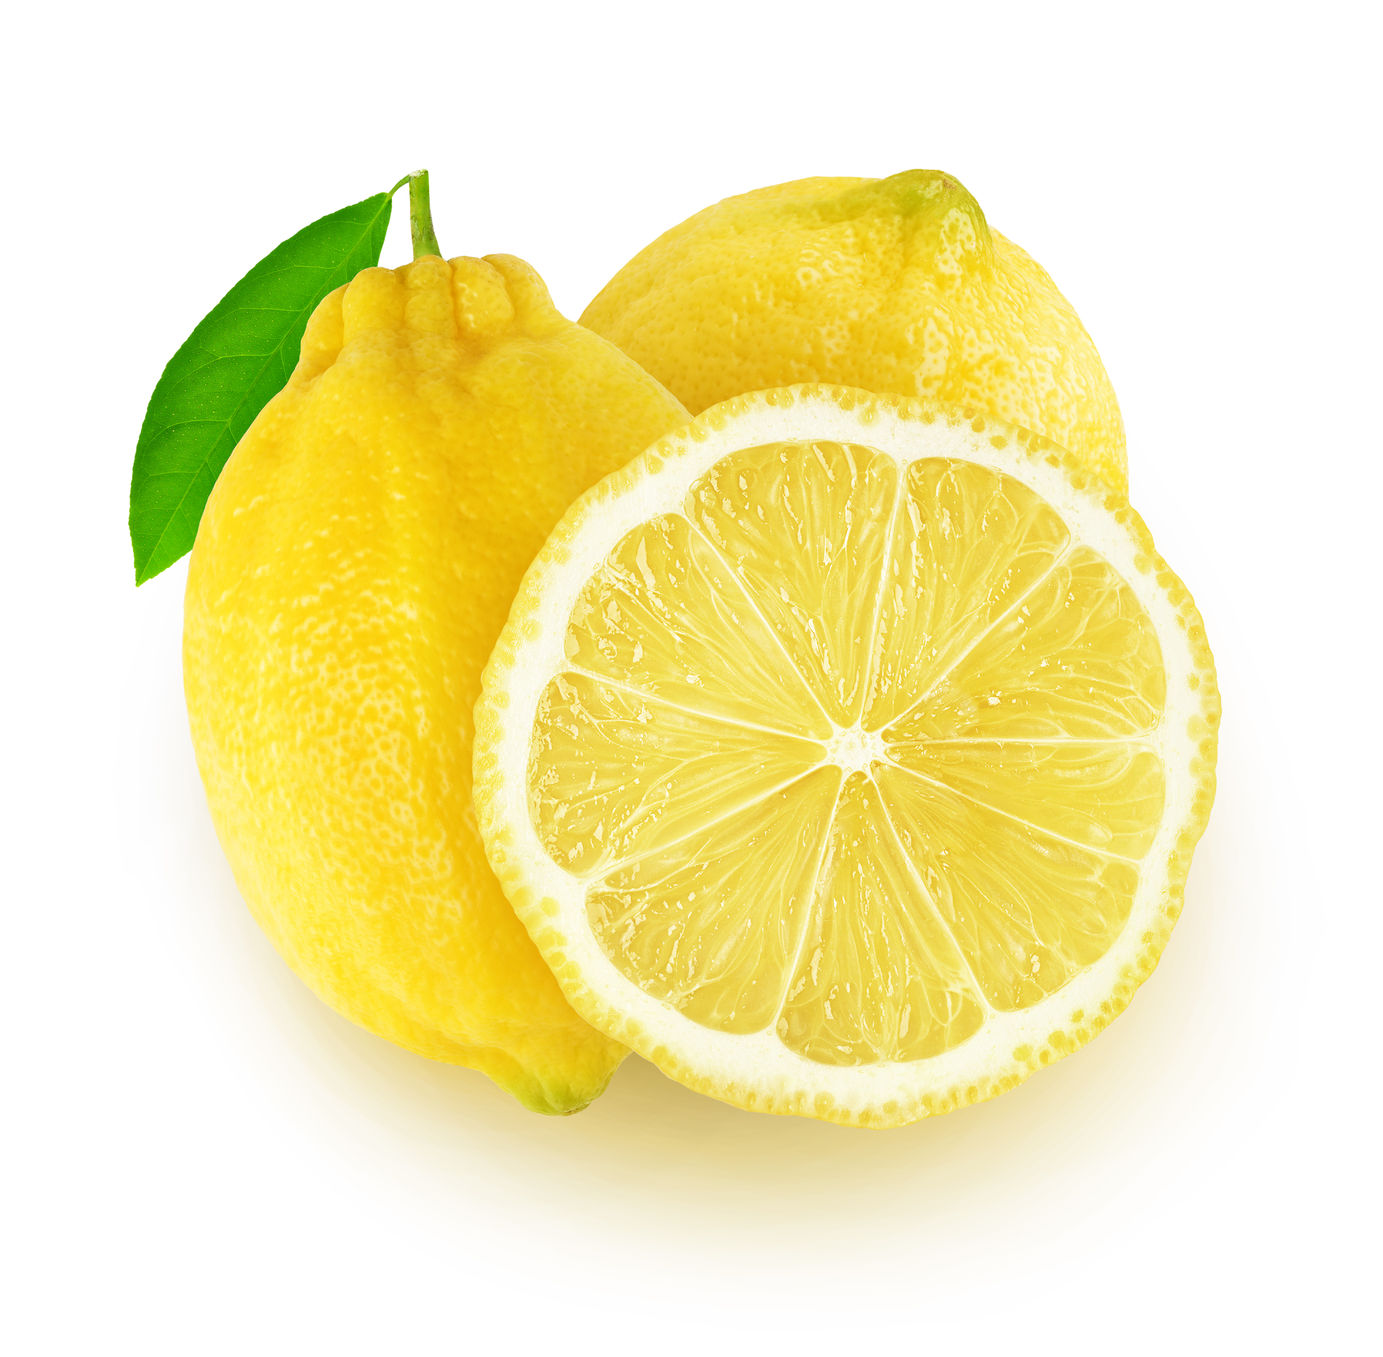 Lemon.   https://www.wocdetox.com/detoxification-supplements.html